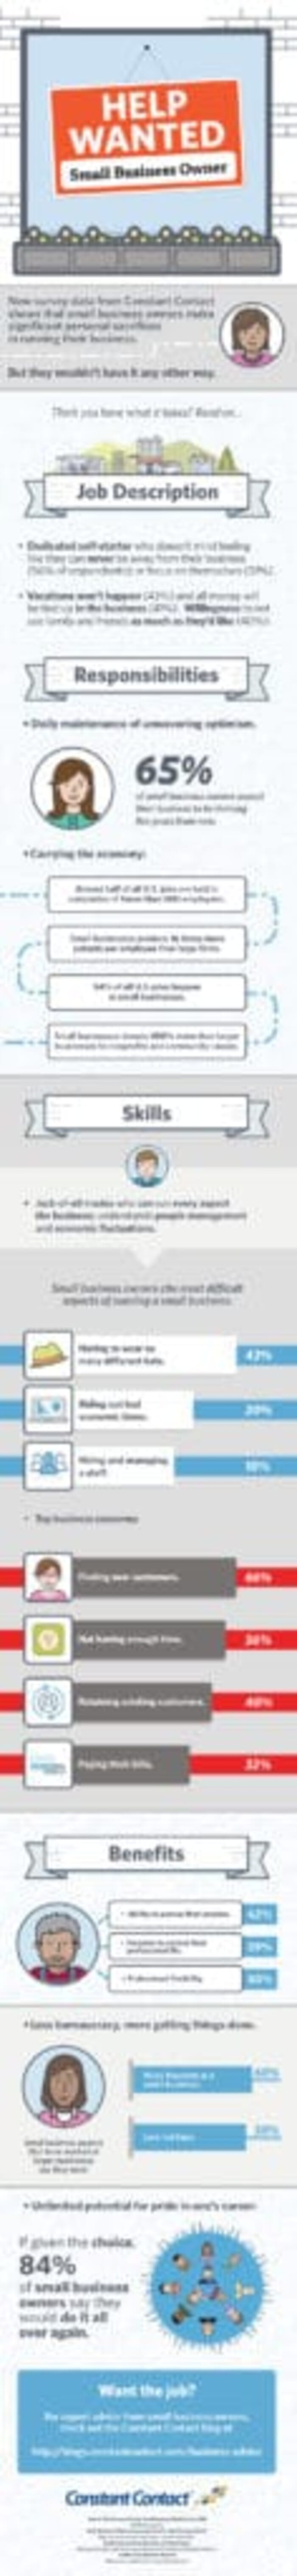 Small Business Owner Infographic